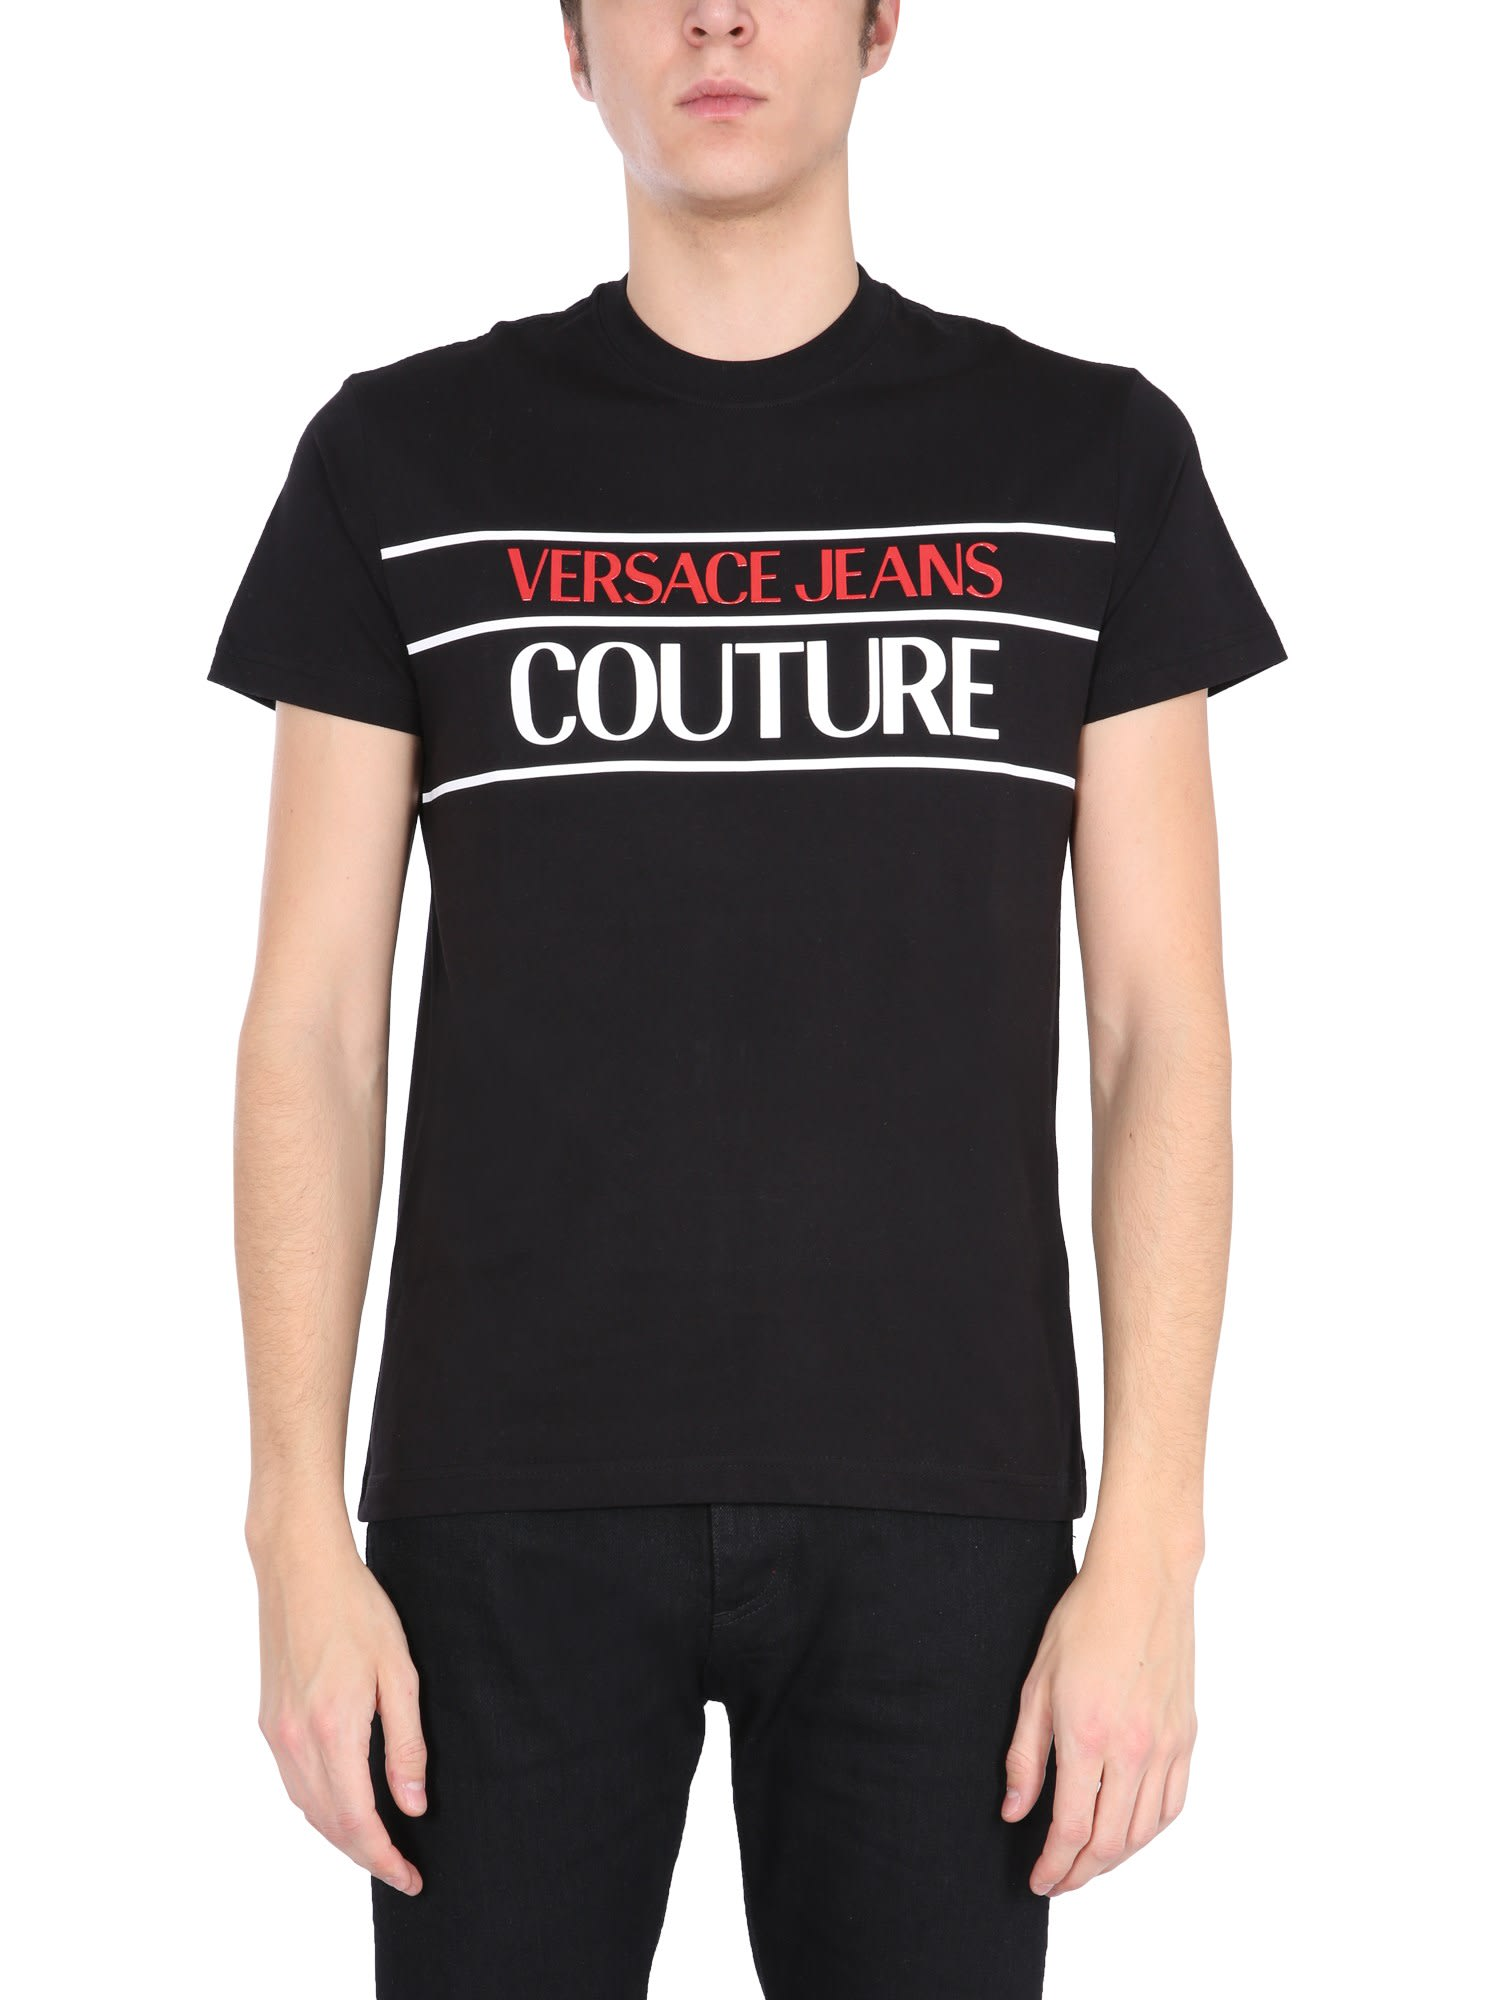 Versace Jeans Couture T-shirts T-SHIRT WITH LOGO